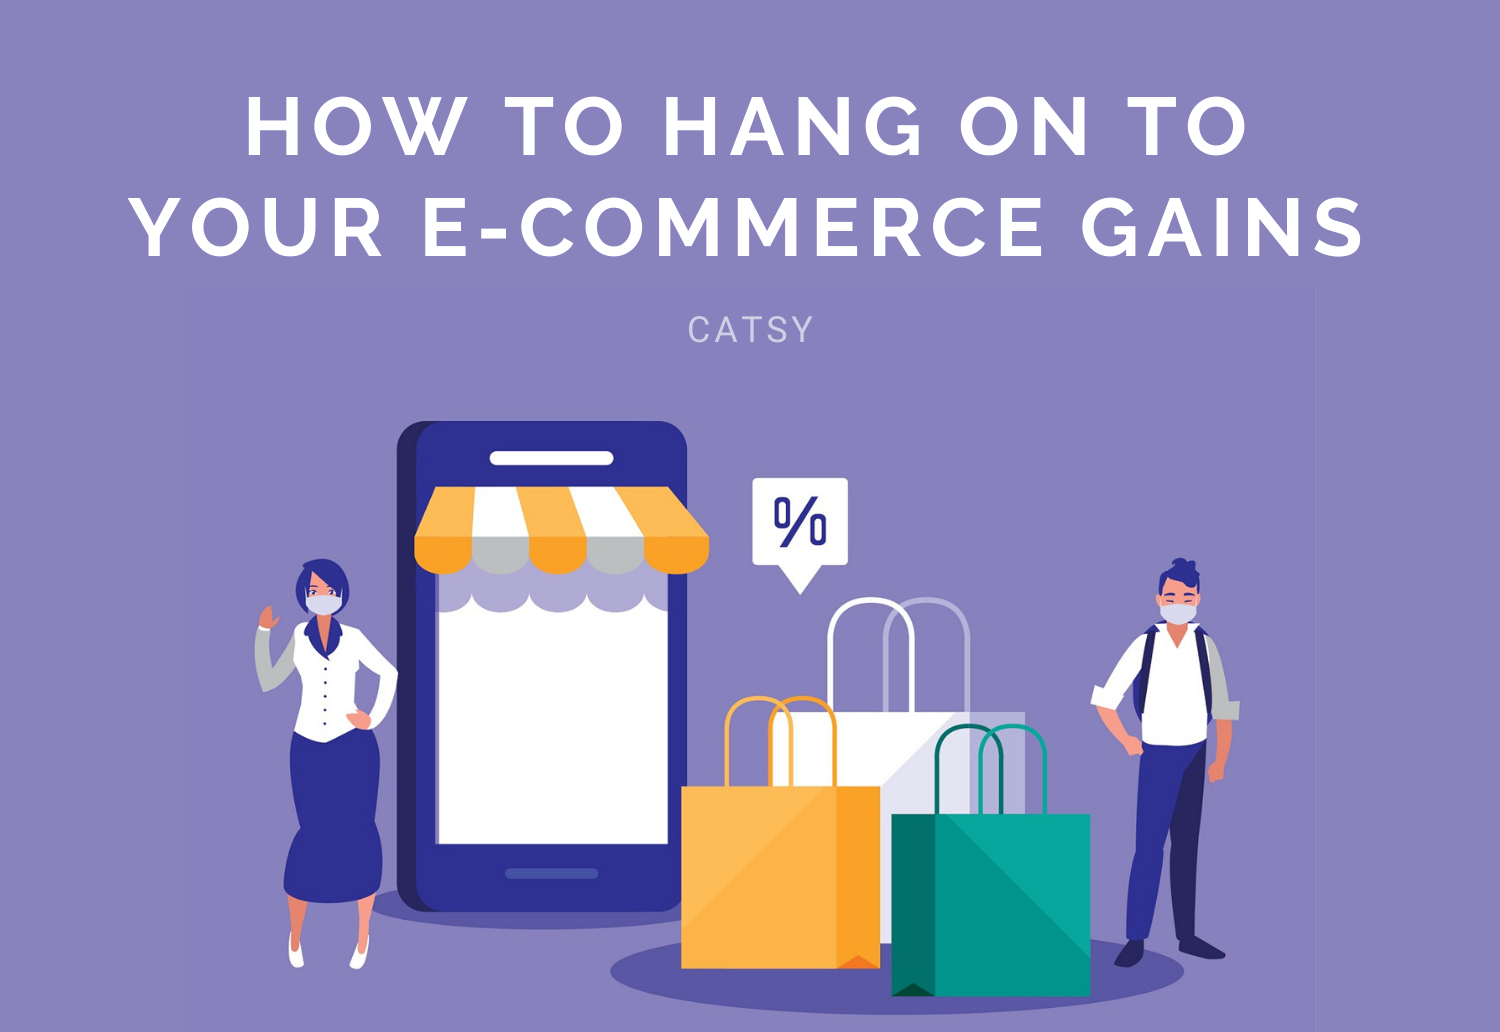 How to Hang on to your E-commerce Gains During COVID-19